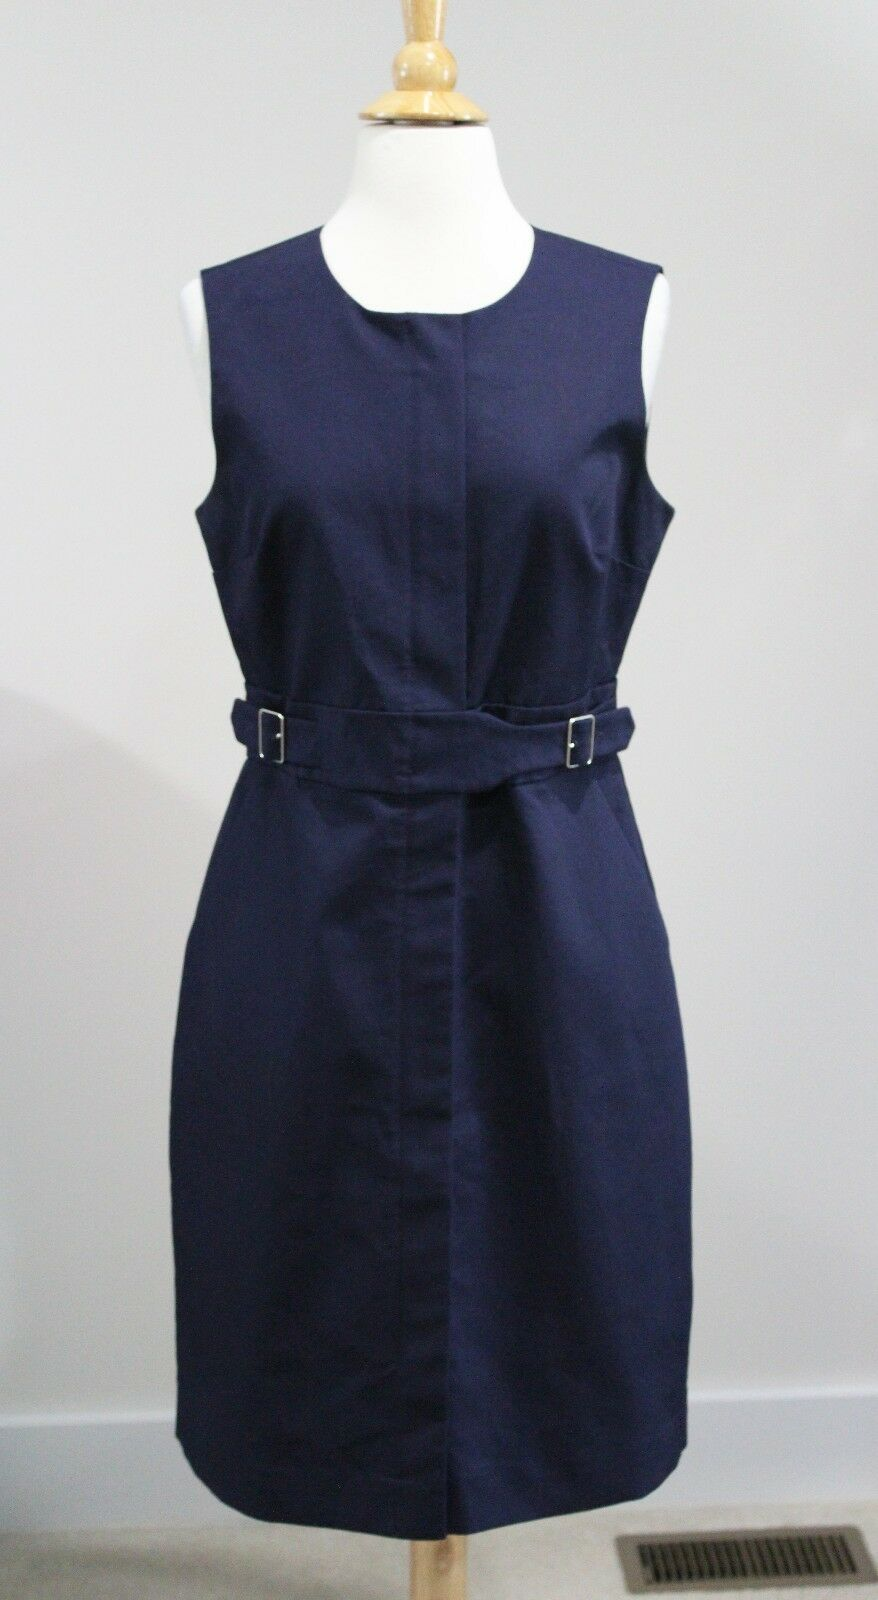 New J CREW Navy Blau ZIP FRONT SLEEVELESS DRESS  Sz 6 Style G2717 Cotton